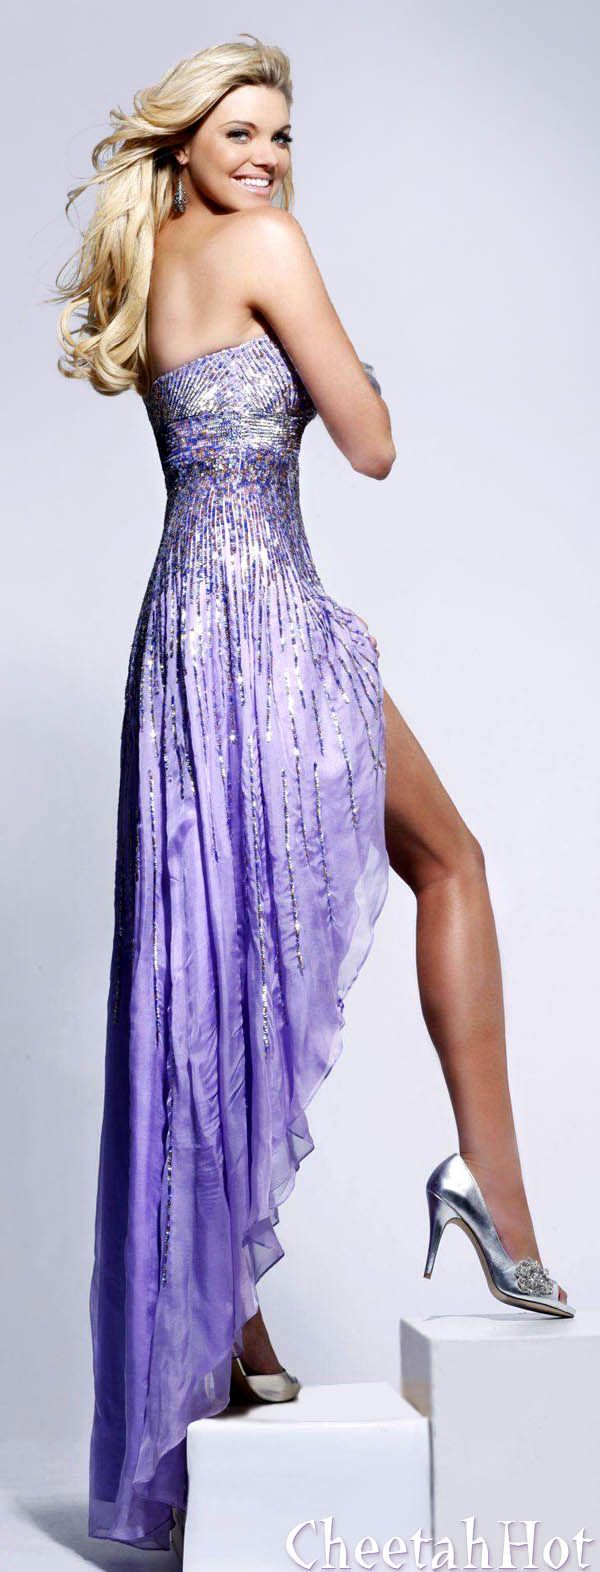 best pretty in purple images on pinterest ball gowns purple